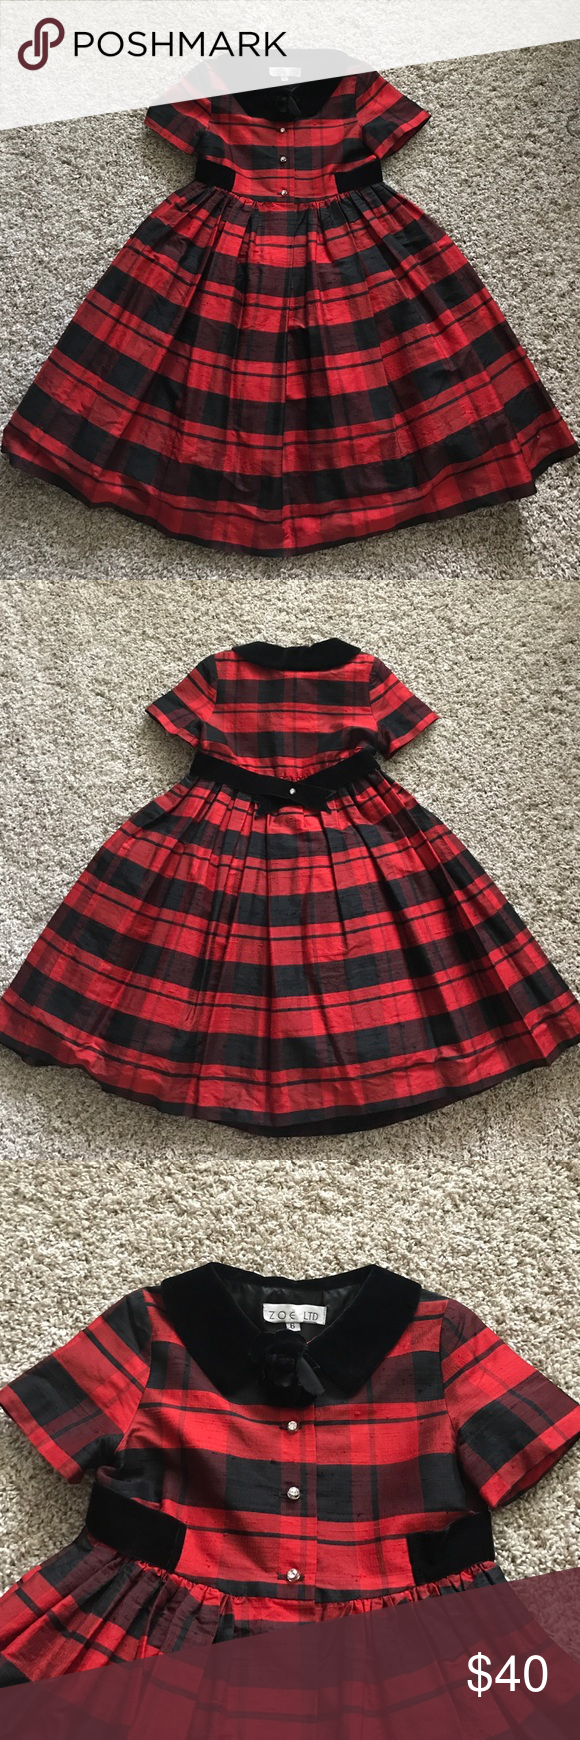 Adorable Red and Black Plaid Girls Dress Very cute girls dress.  This is an older dress and has some minor flaws but is in overall good condition. Well made, fully lined.  Please see pics for details. Dresses